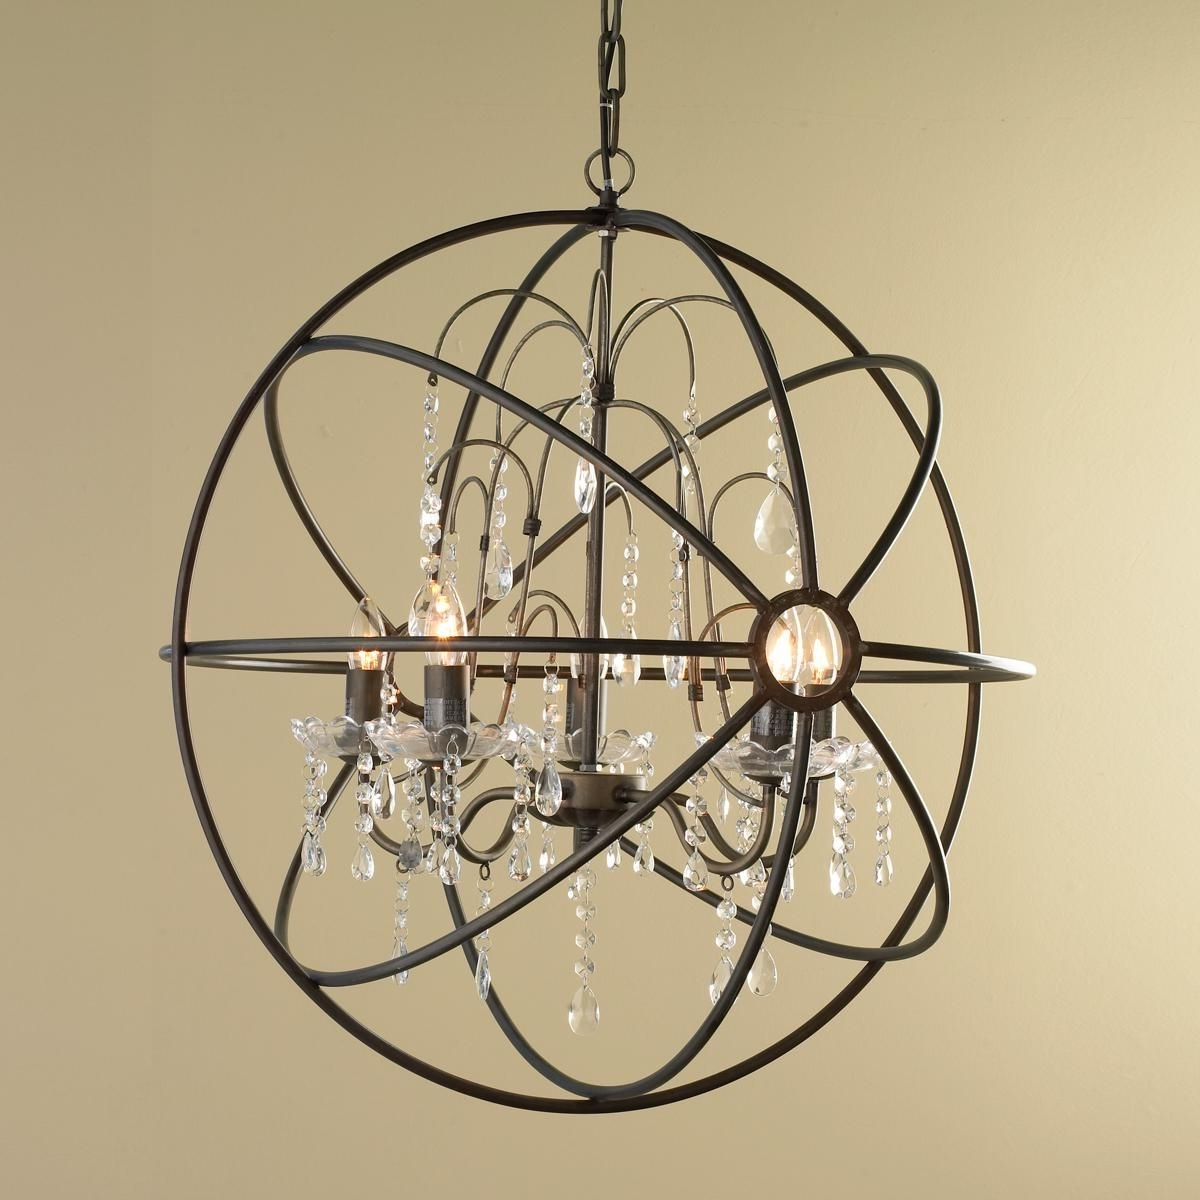 Crystal And Metal Orb Chandelier (View 13 of 15)